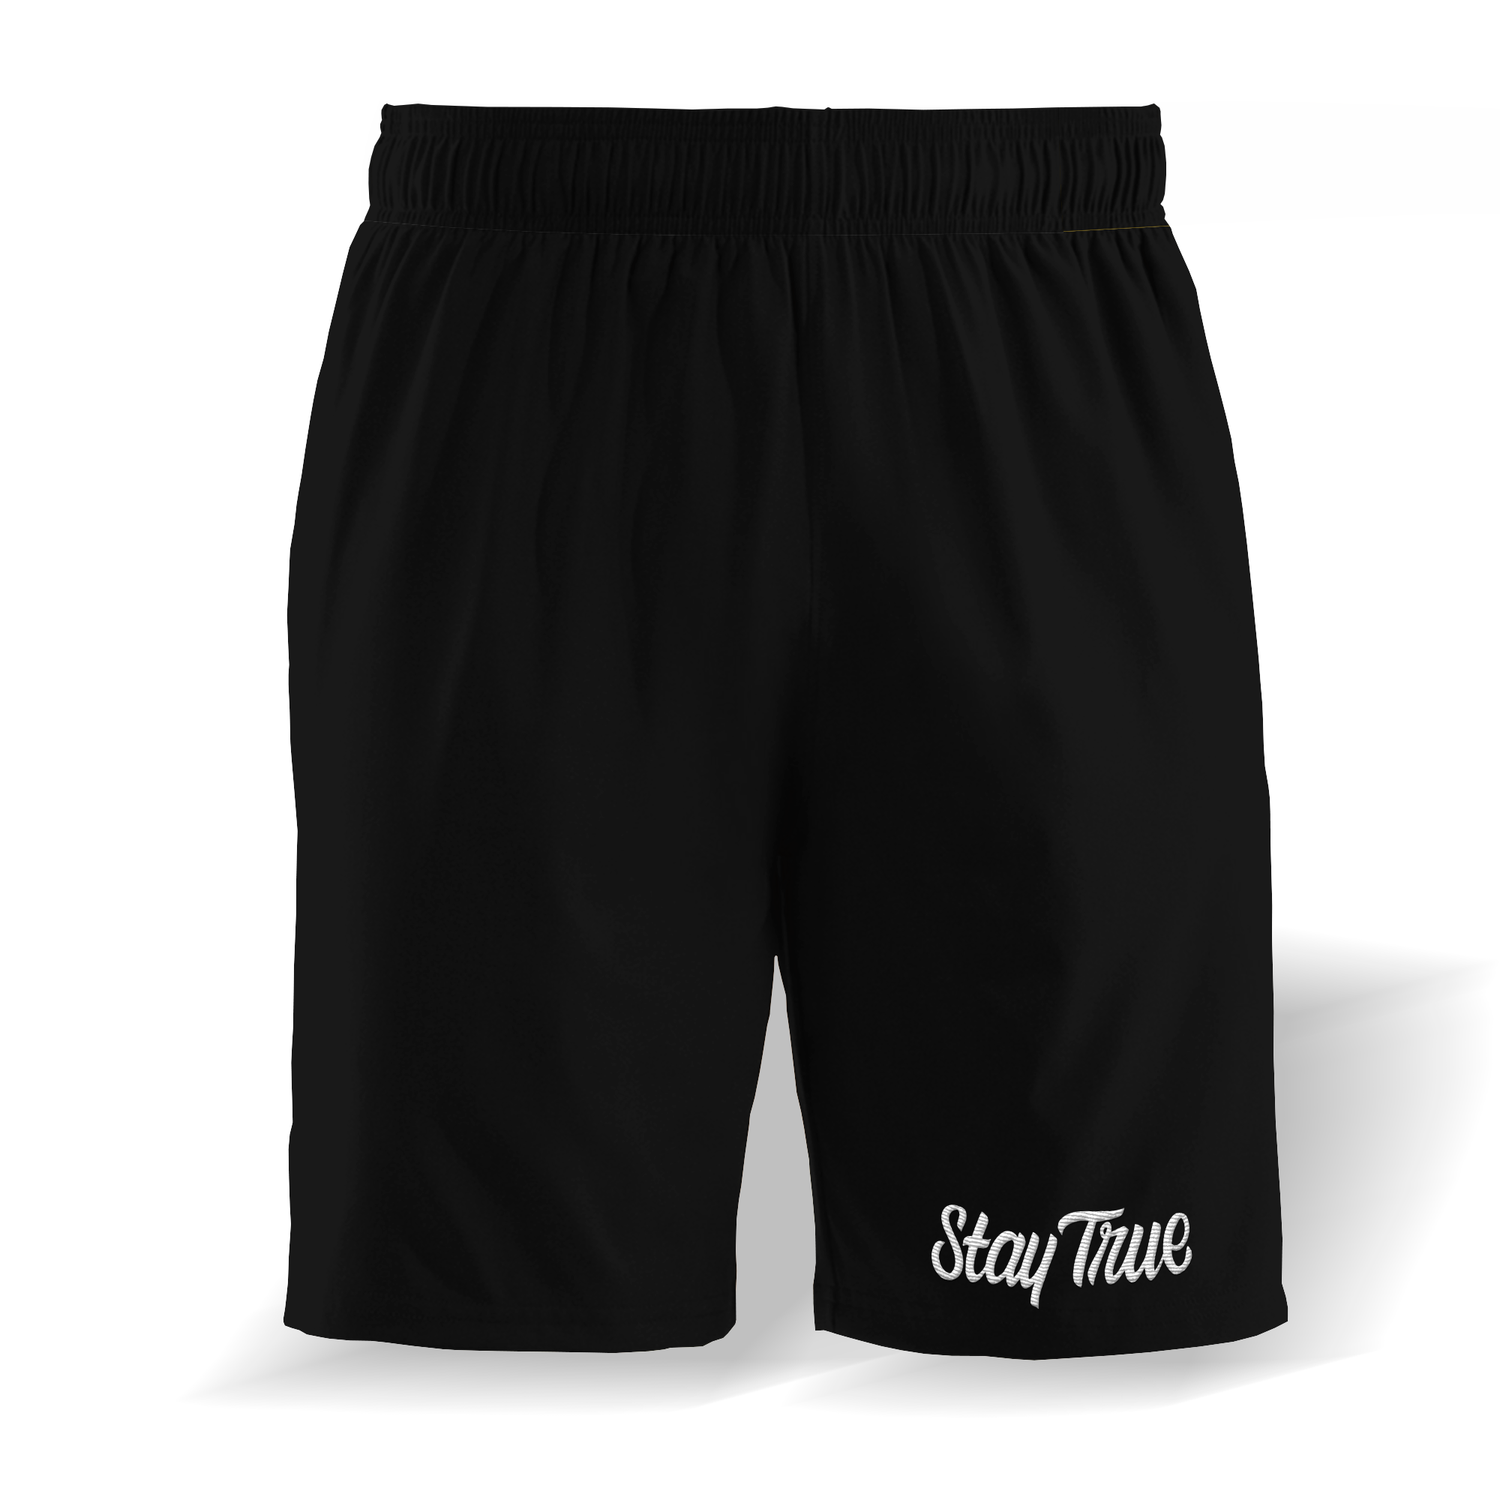 Image of Stay True x Champion Shorts!